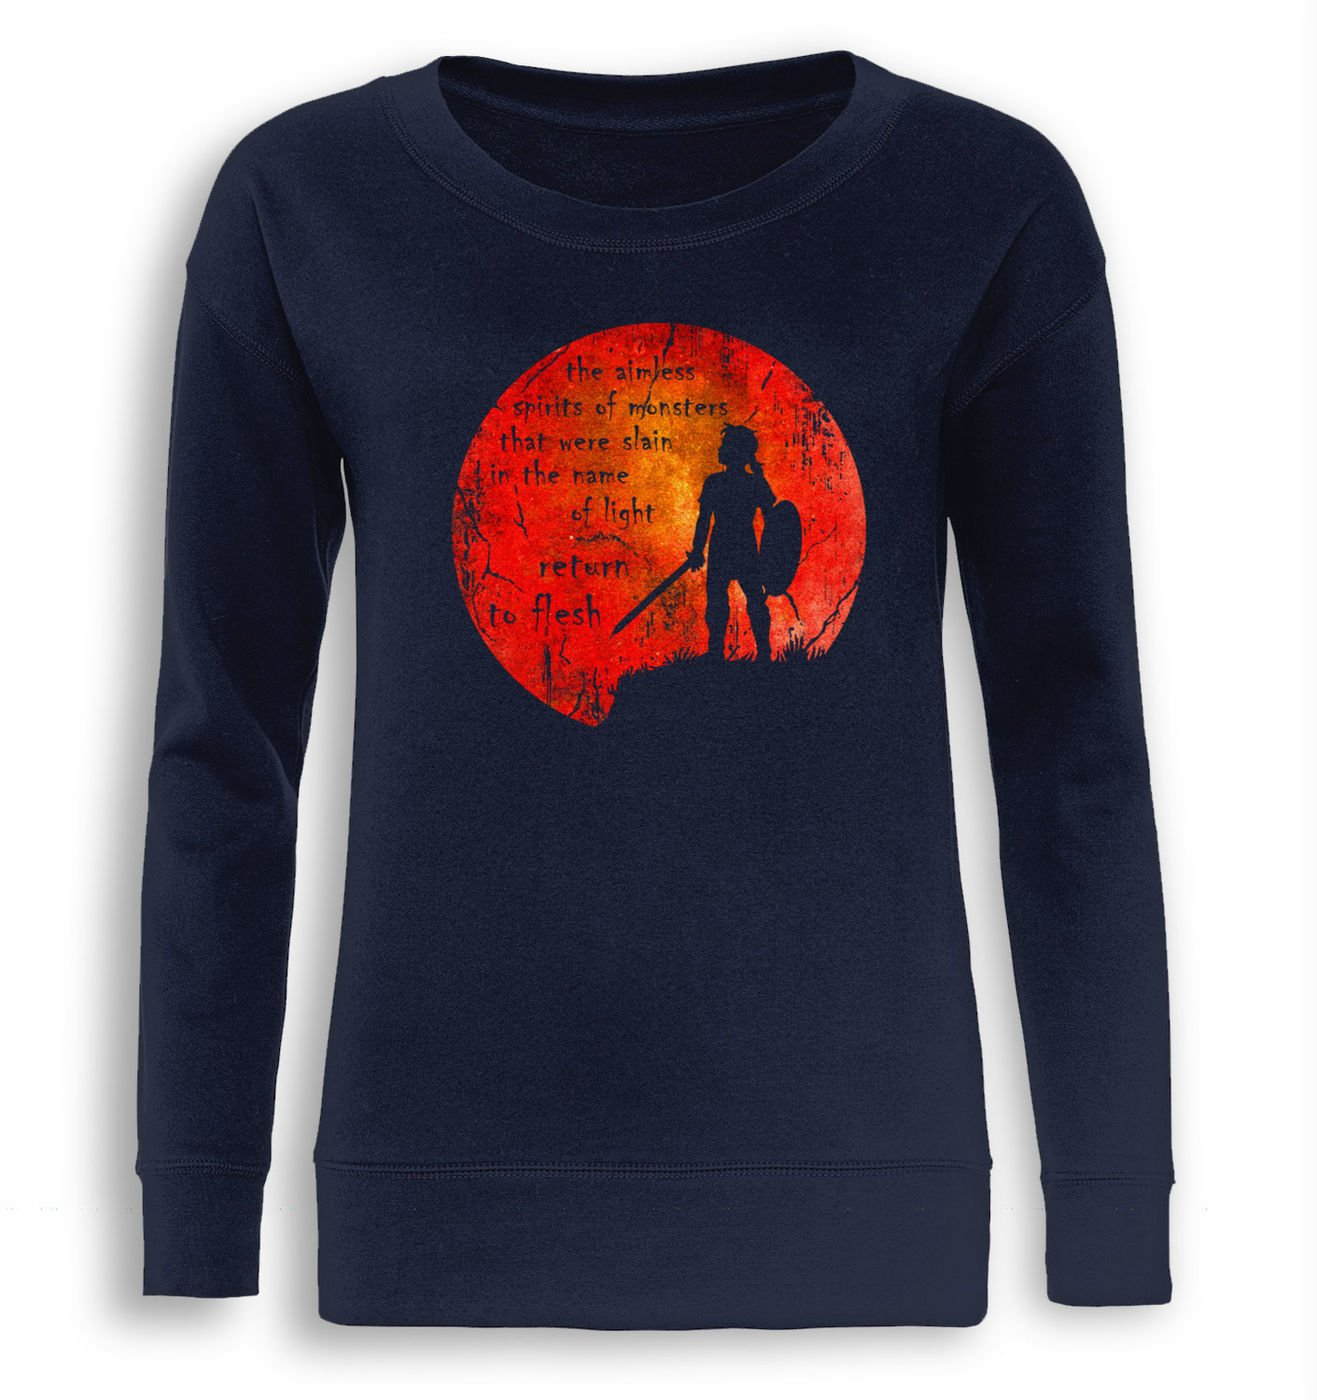 Blood Moon fitted women's sweatshirt by Something Geeky